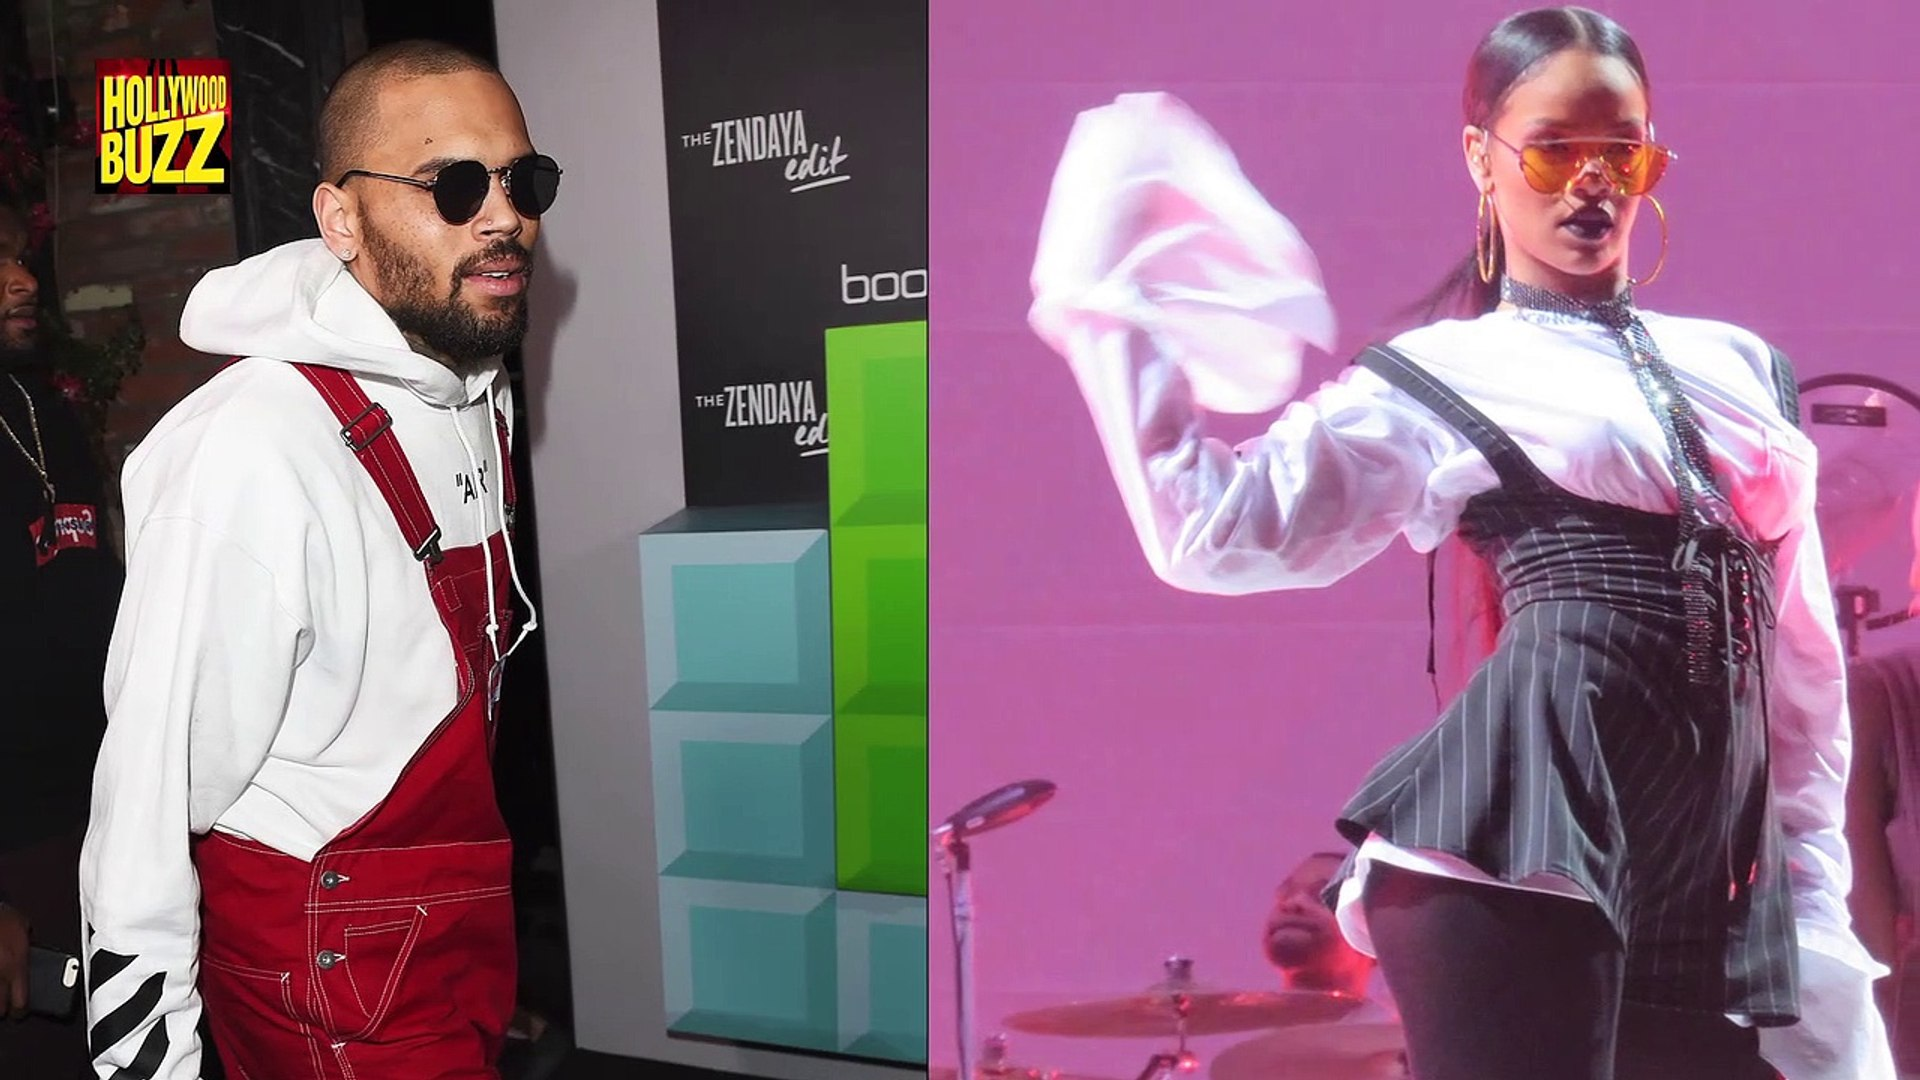 Rihanna Feels Horrible For Chris Brown After Physical Abuse Allegation